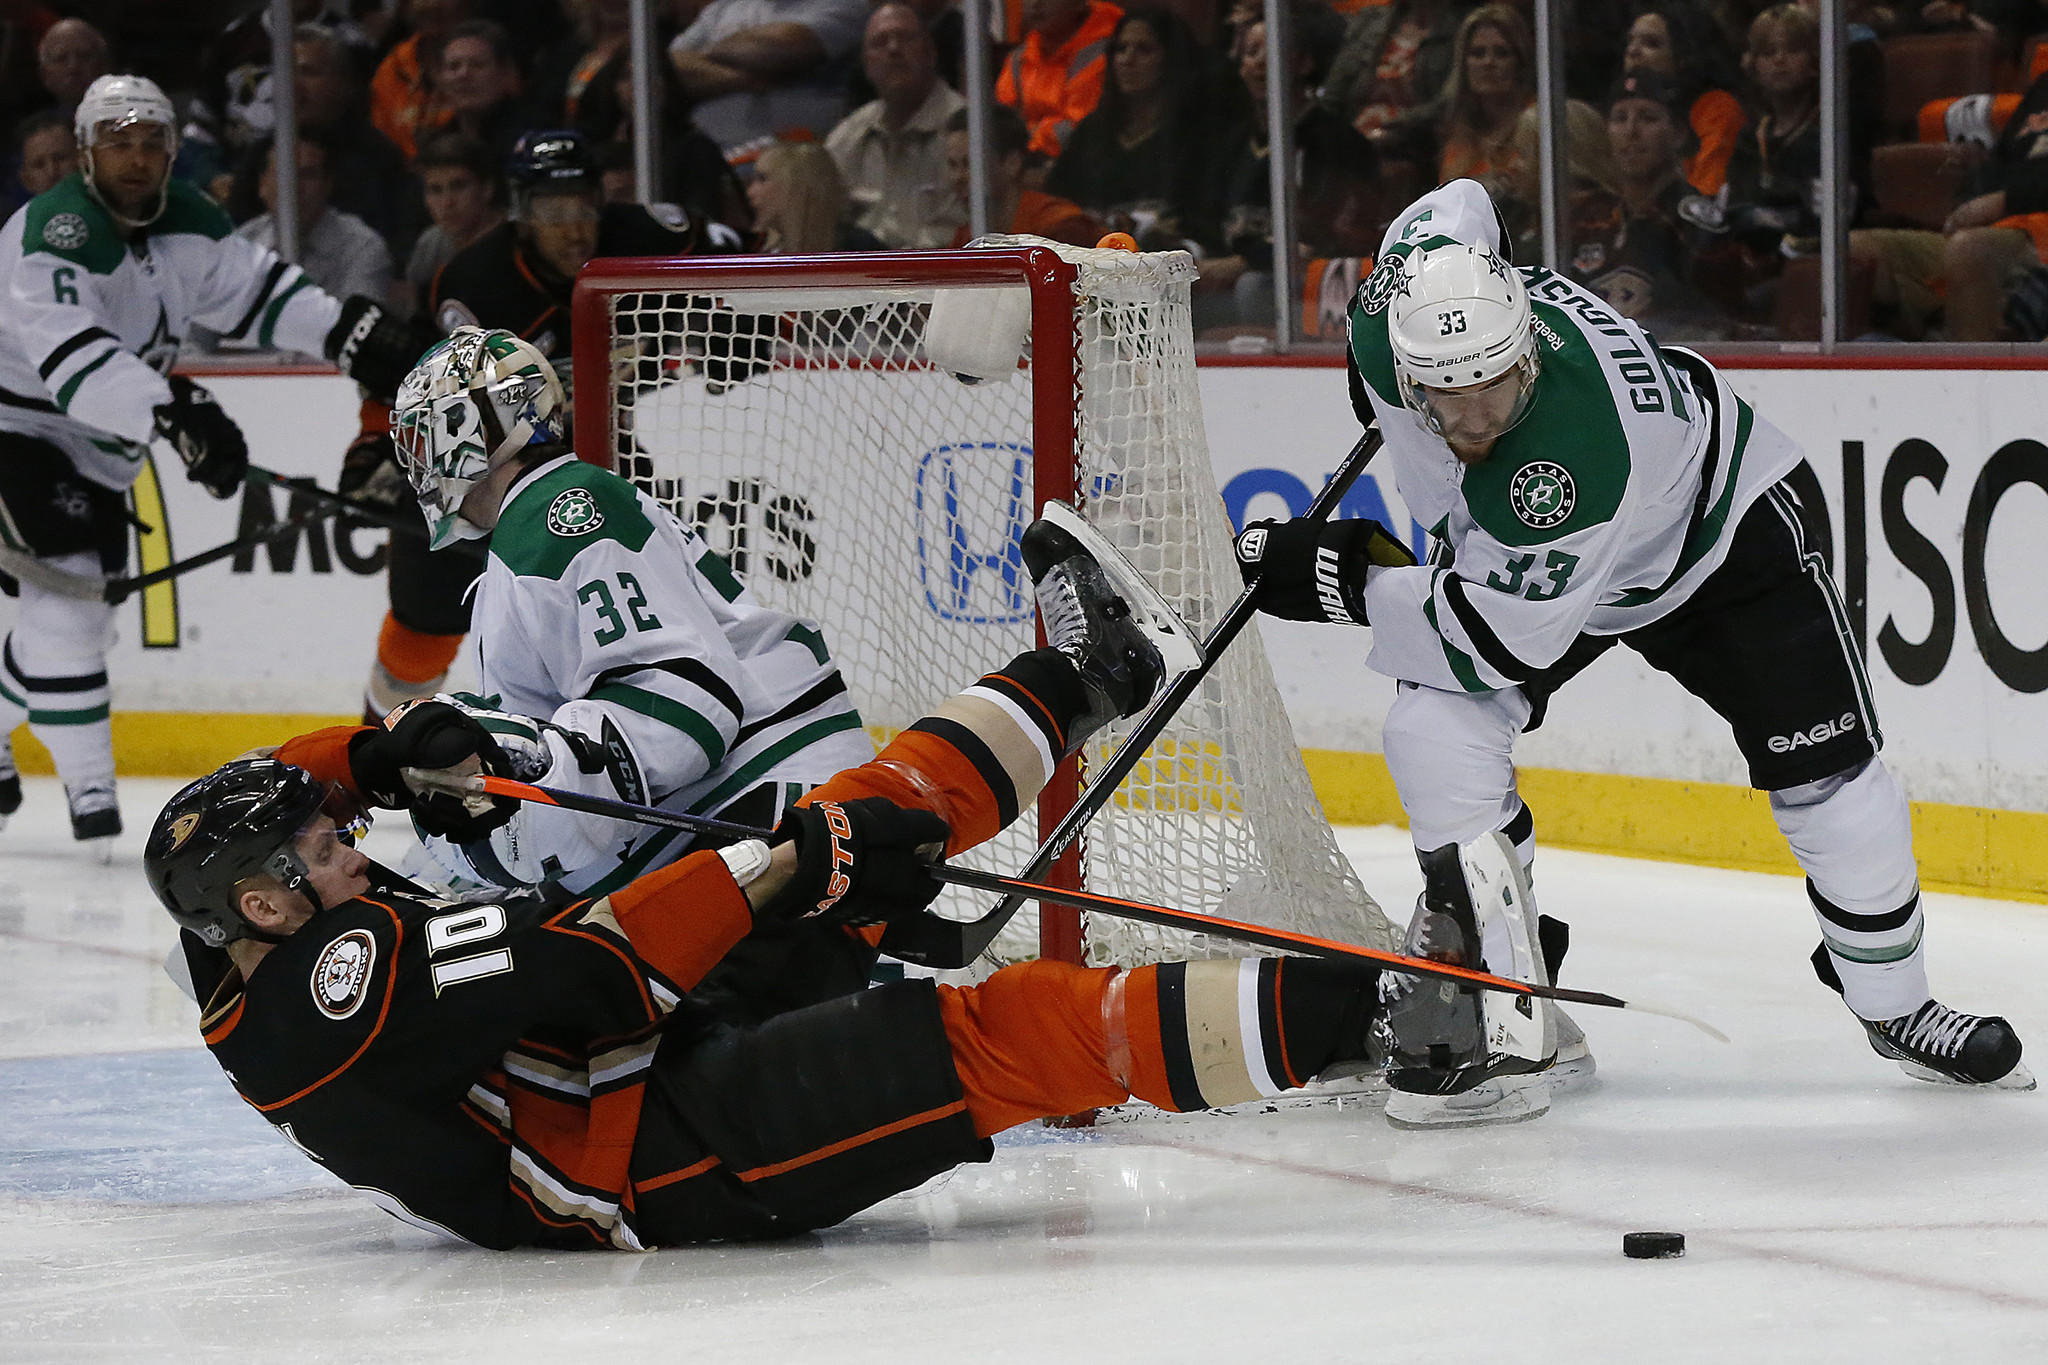 Ducks winger Corey Perry (10) is knocked to the ice by Dallas defenseman Alex Goligoski in Game 2 of a Stanley Cup playoff series at the Honda Center.